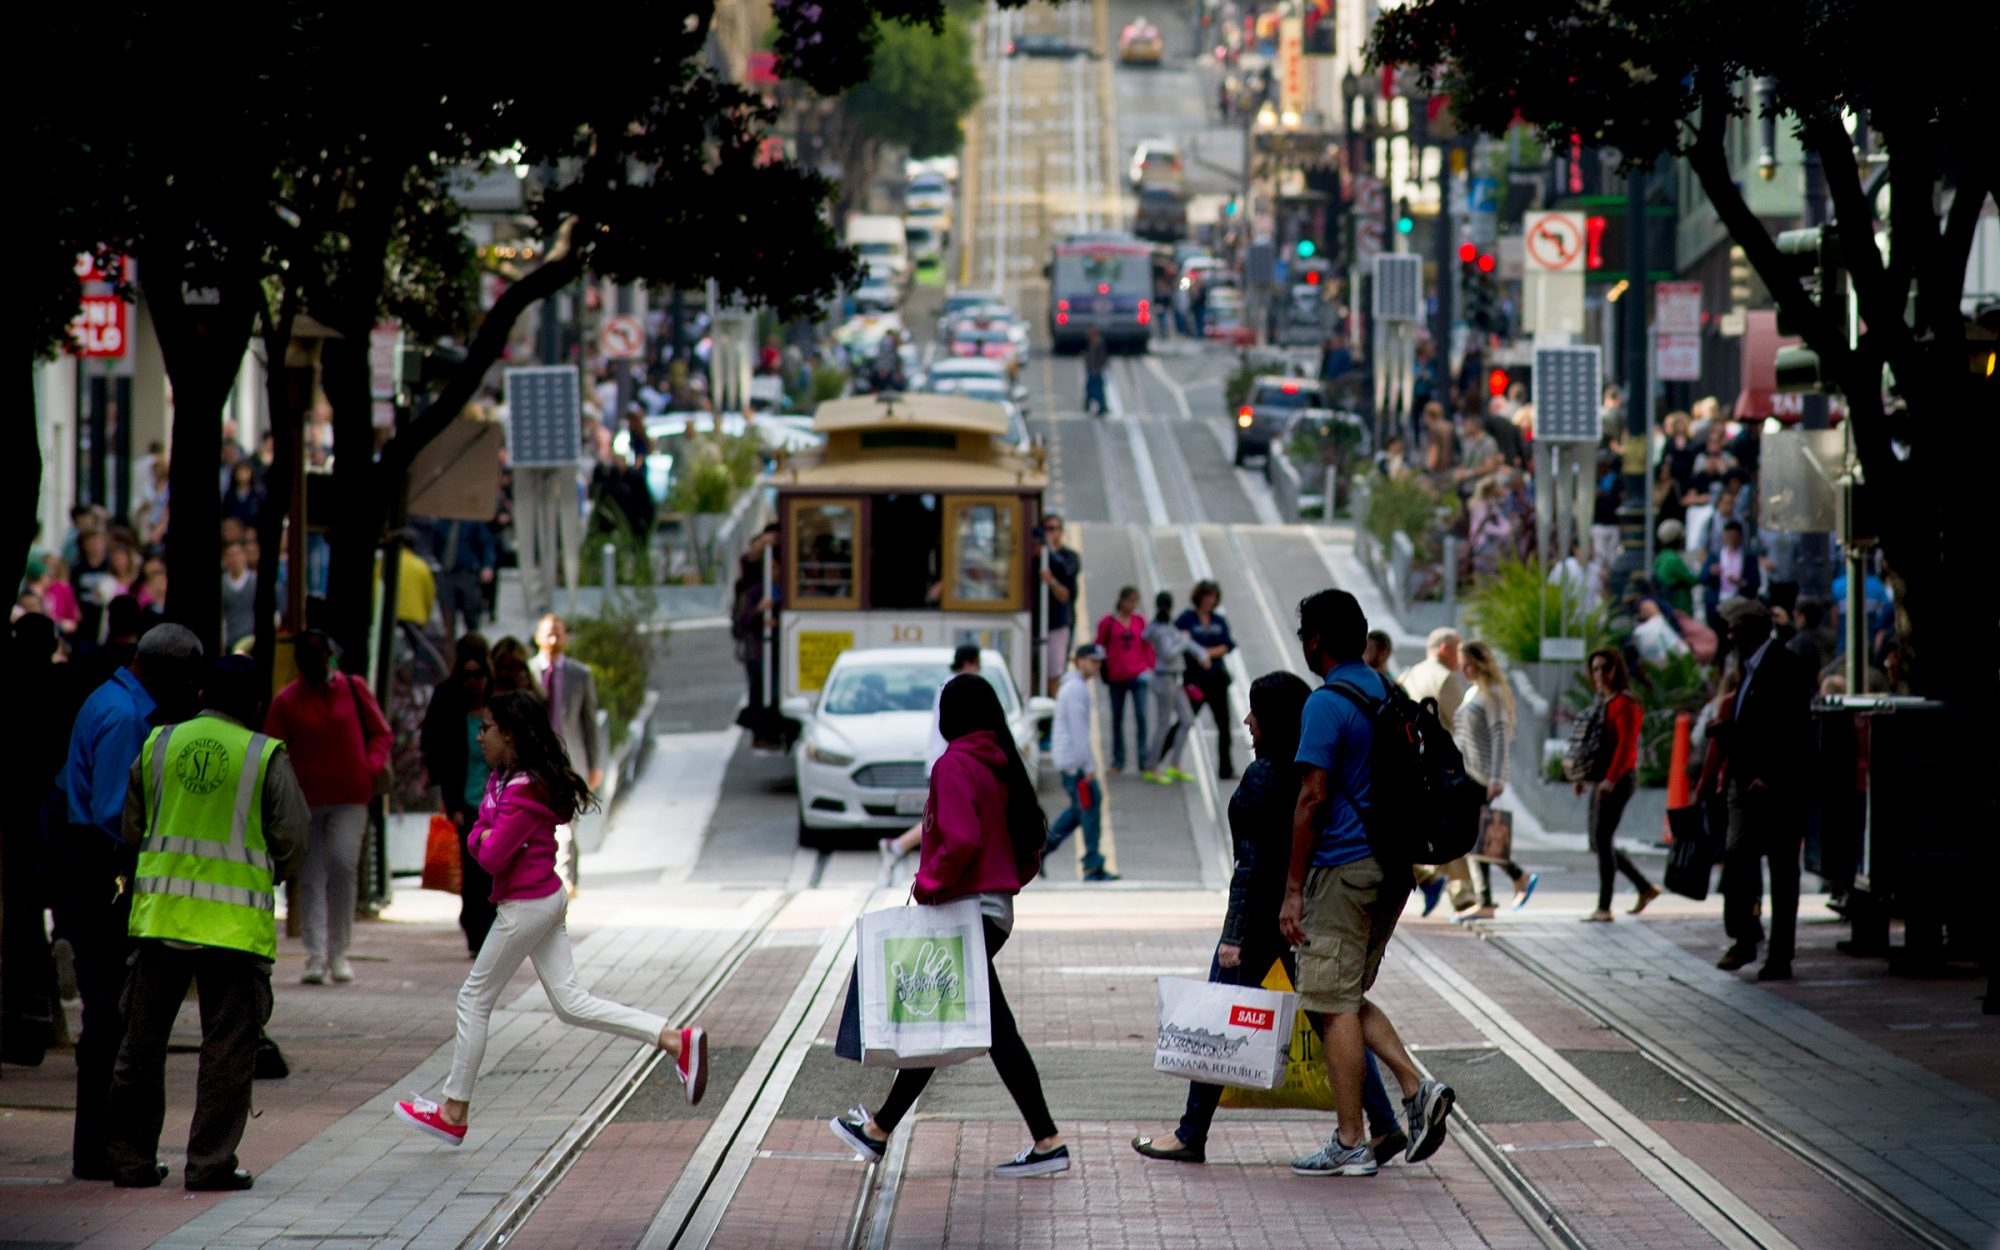 Best U.S. Cities for Shopping